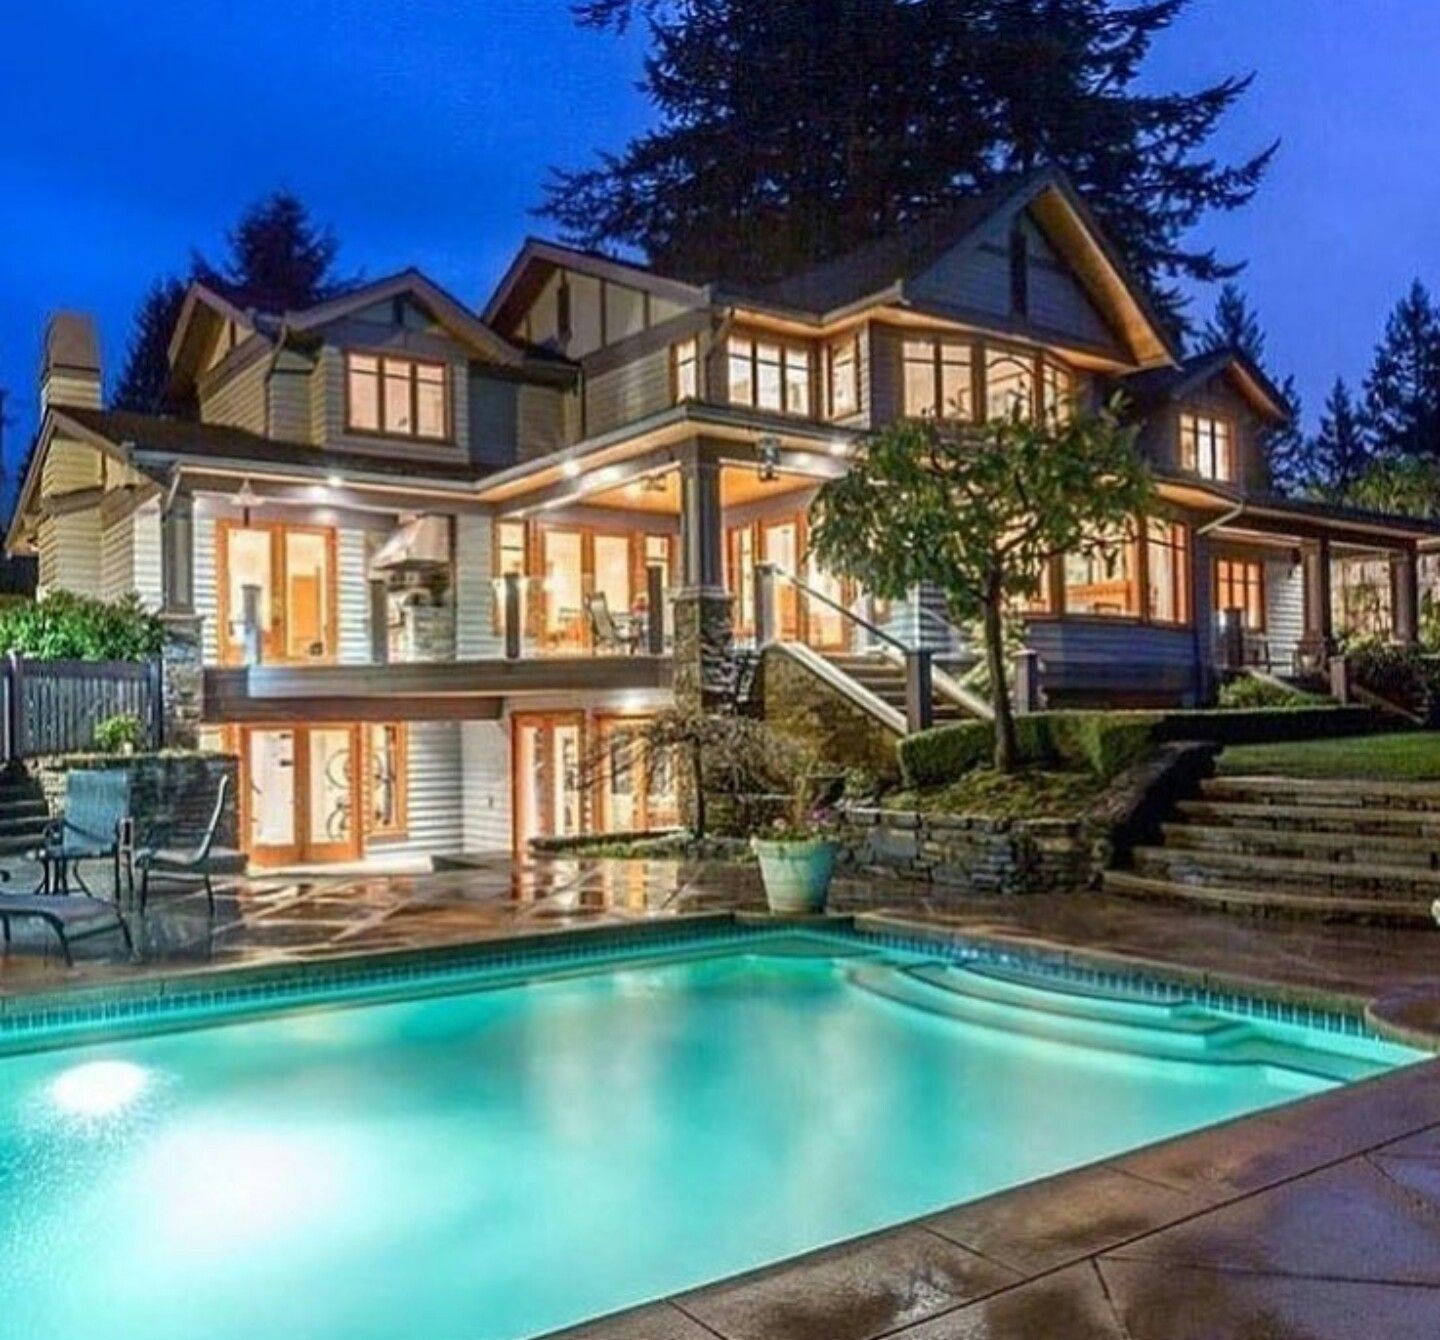 Luxury Mansions: Building Dream House 2018